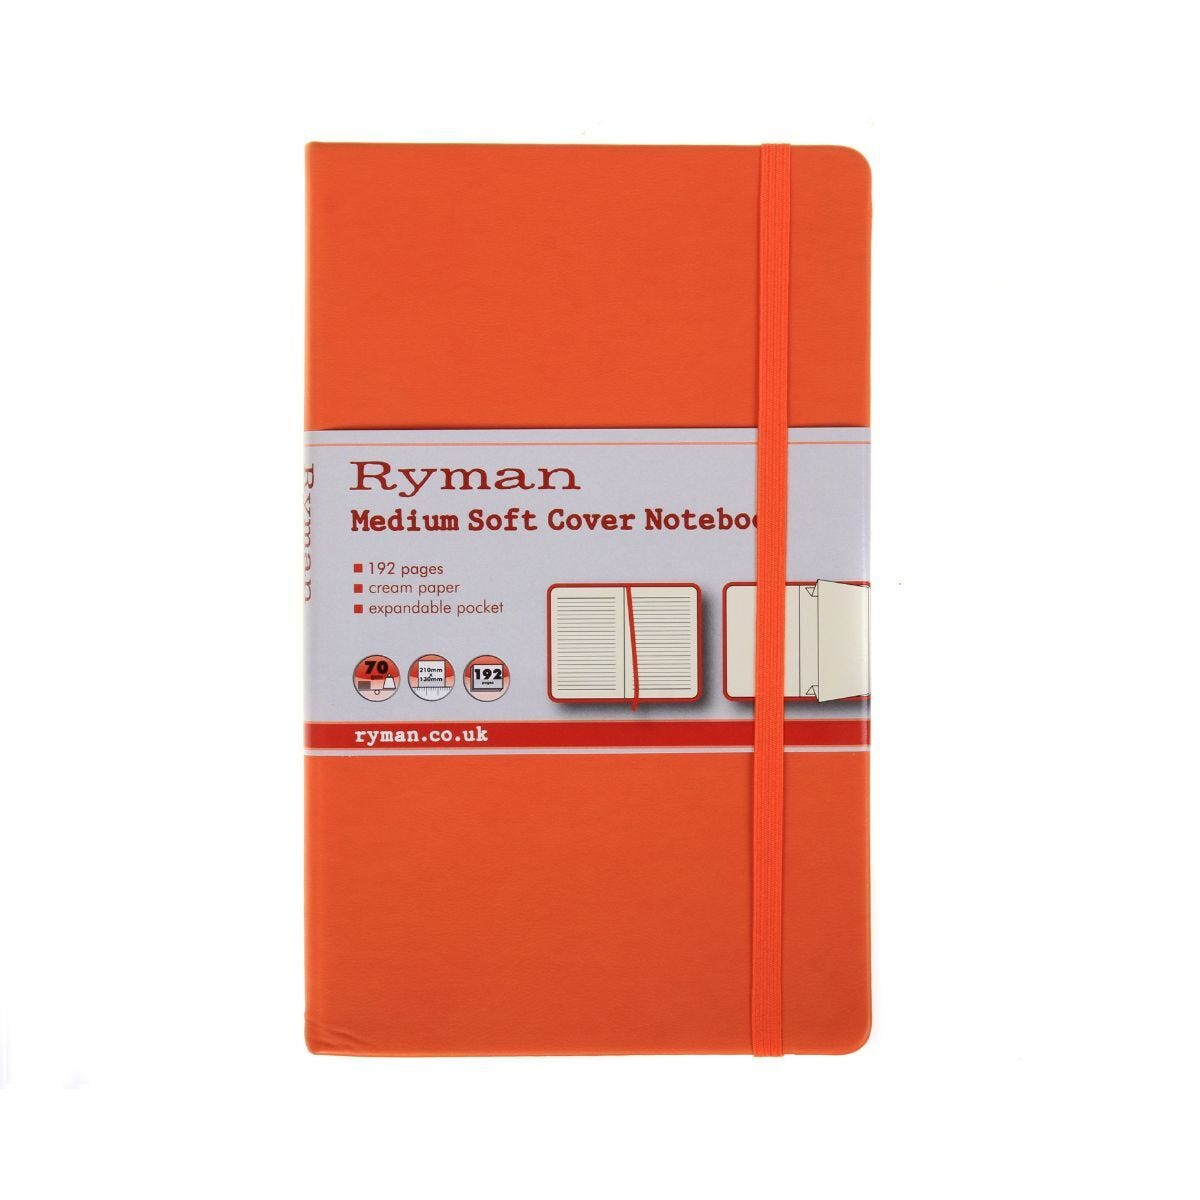 Ryman Soft Cover Notebook Medium Ruled 192 Pages 96 Sheets